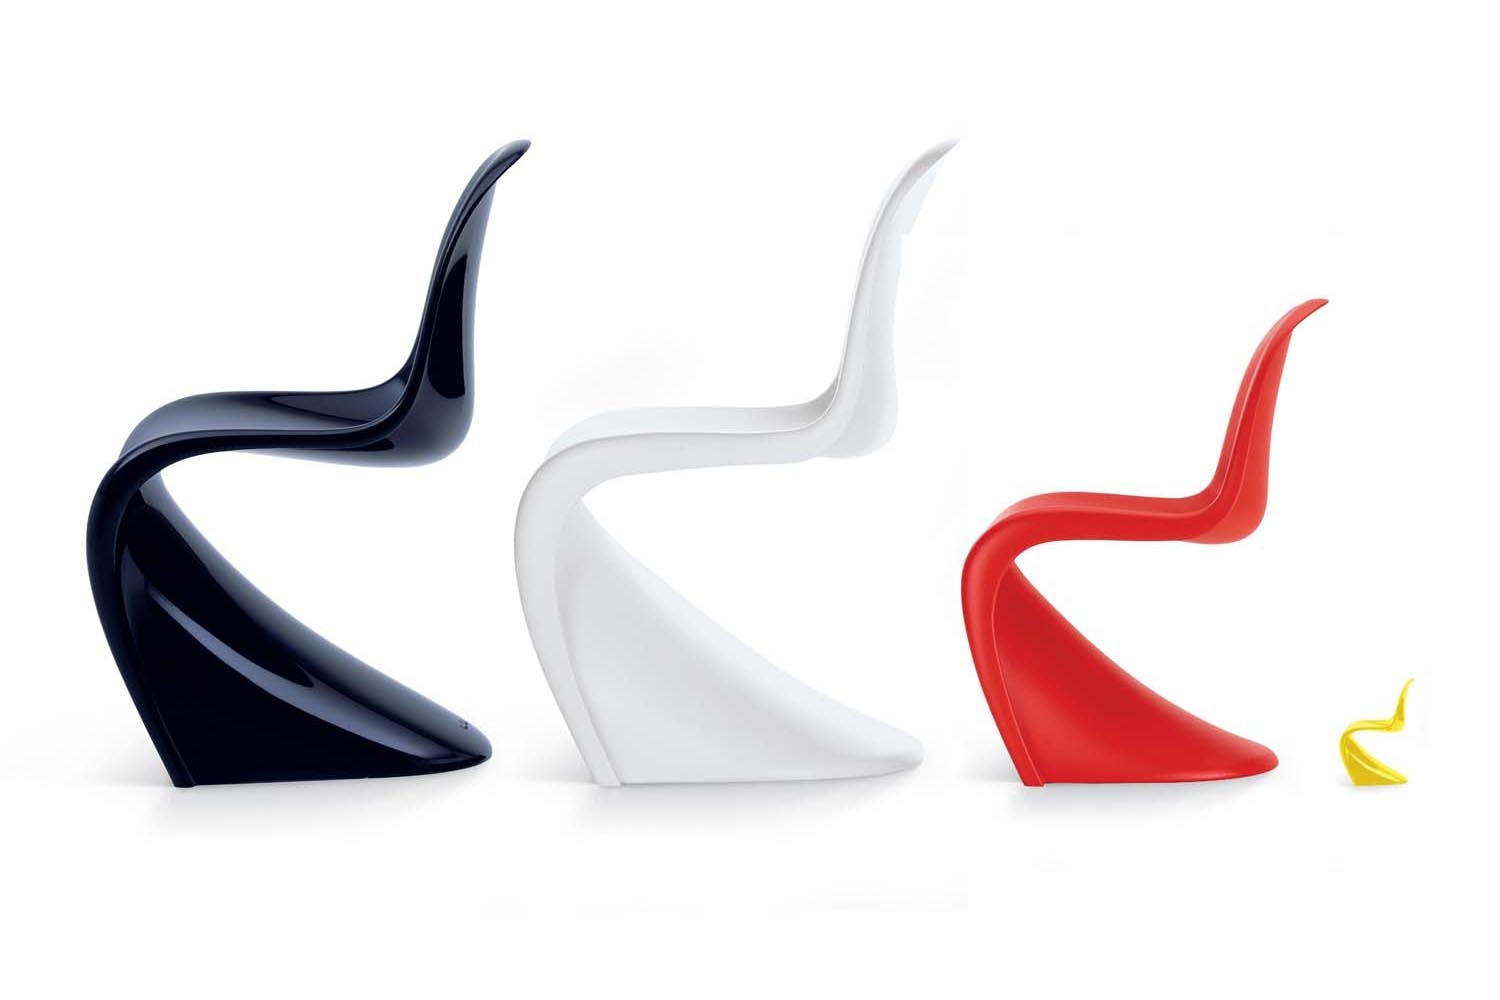 panton chair by verner panton for vitra space furniture